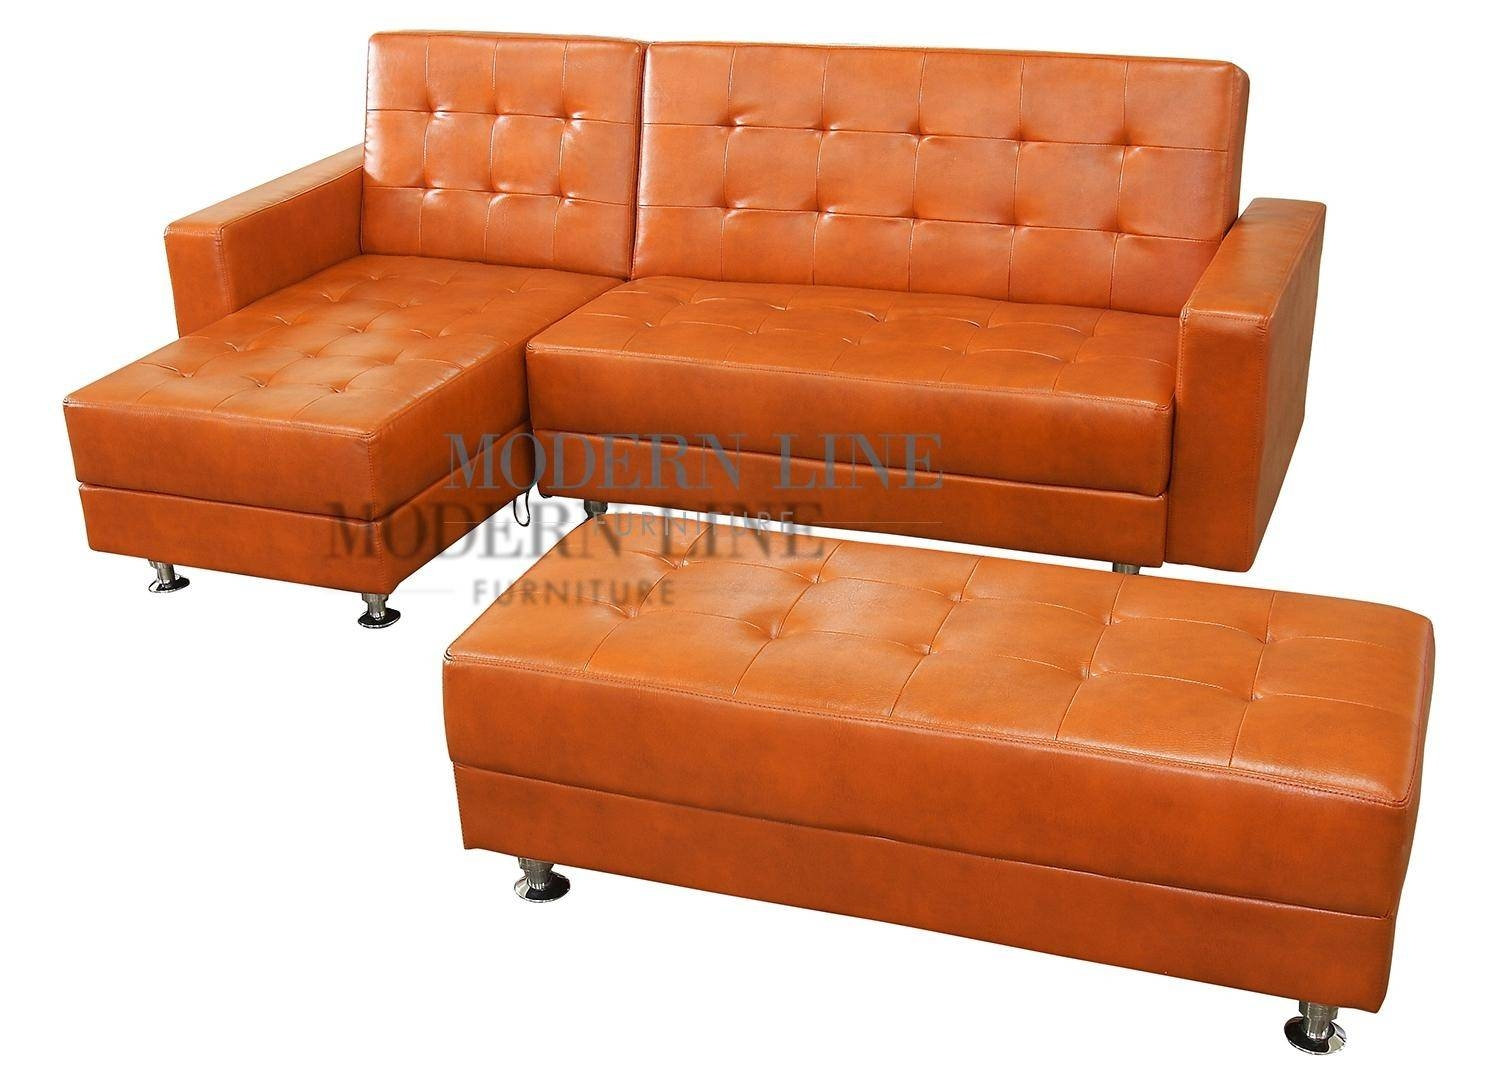 20 Best Burnt Orange Sofas | Sofa Ideas in Burnt Orange Leather Sofas (Image 1 of 15)